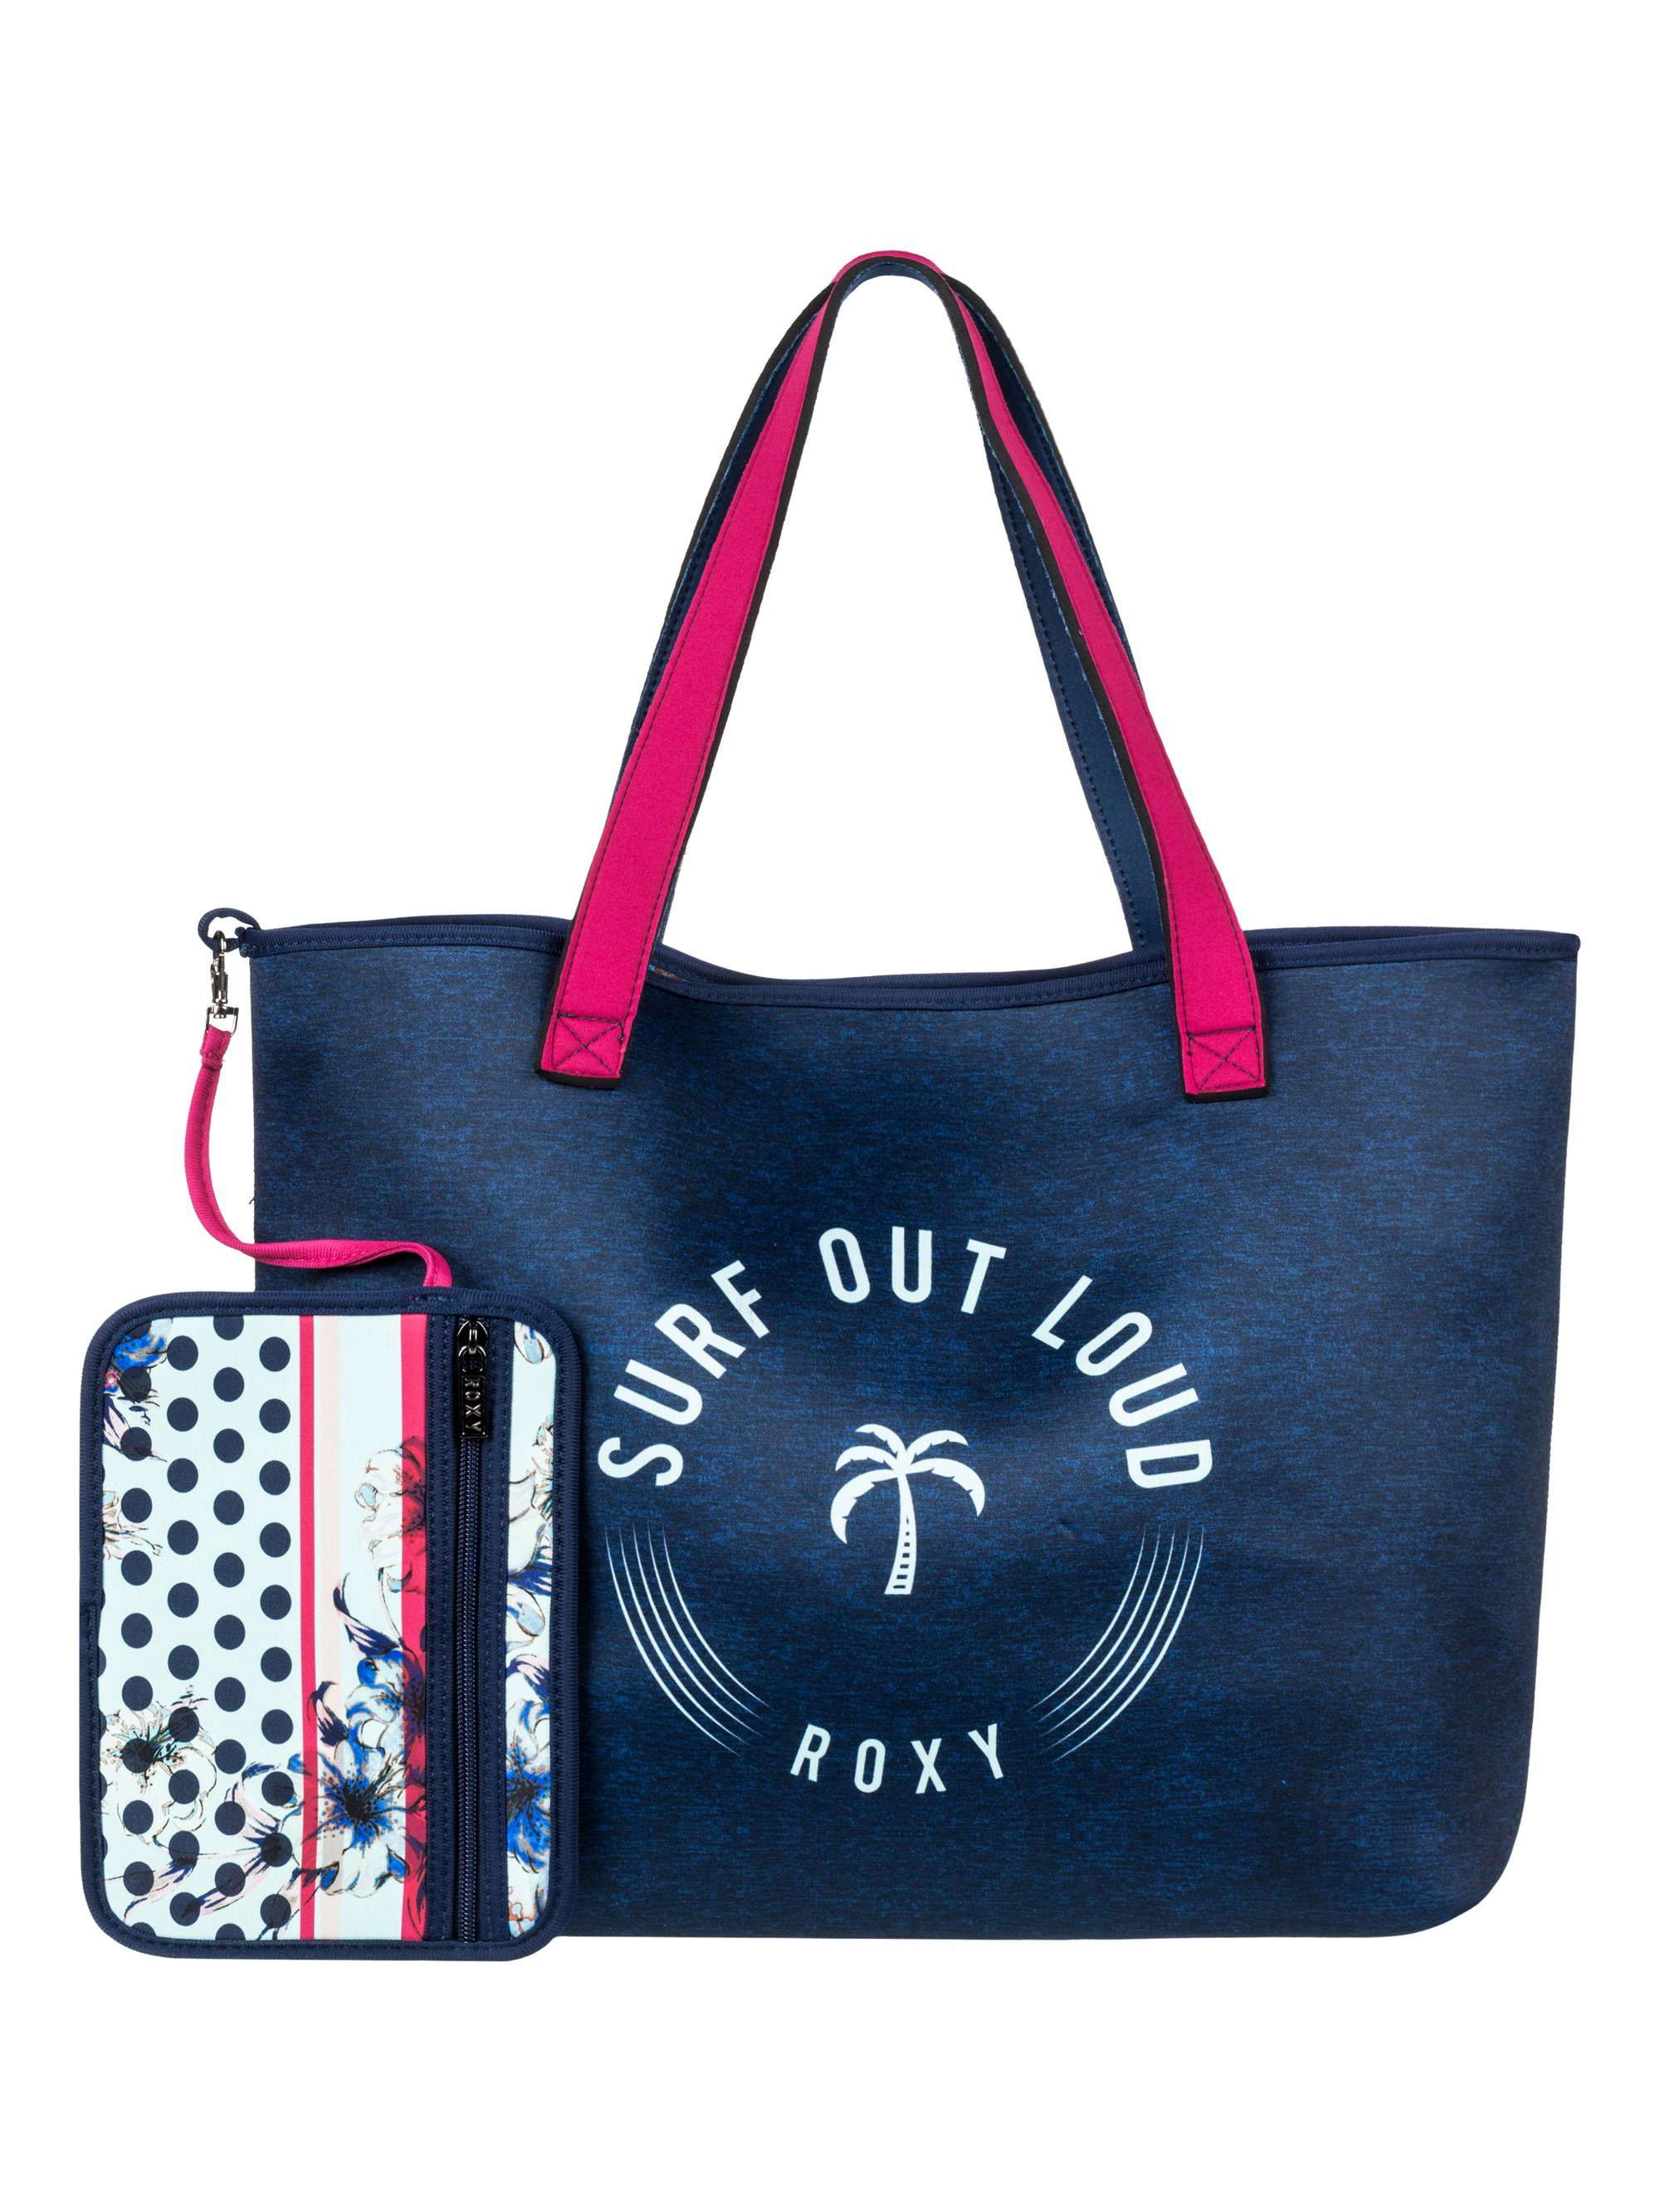 Roxy Wendbare Neopren-Strandtasche »Inside The Rock«